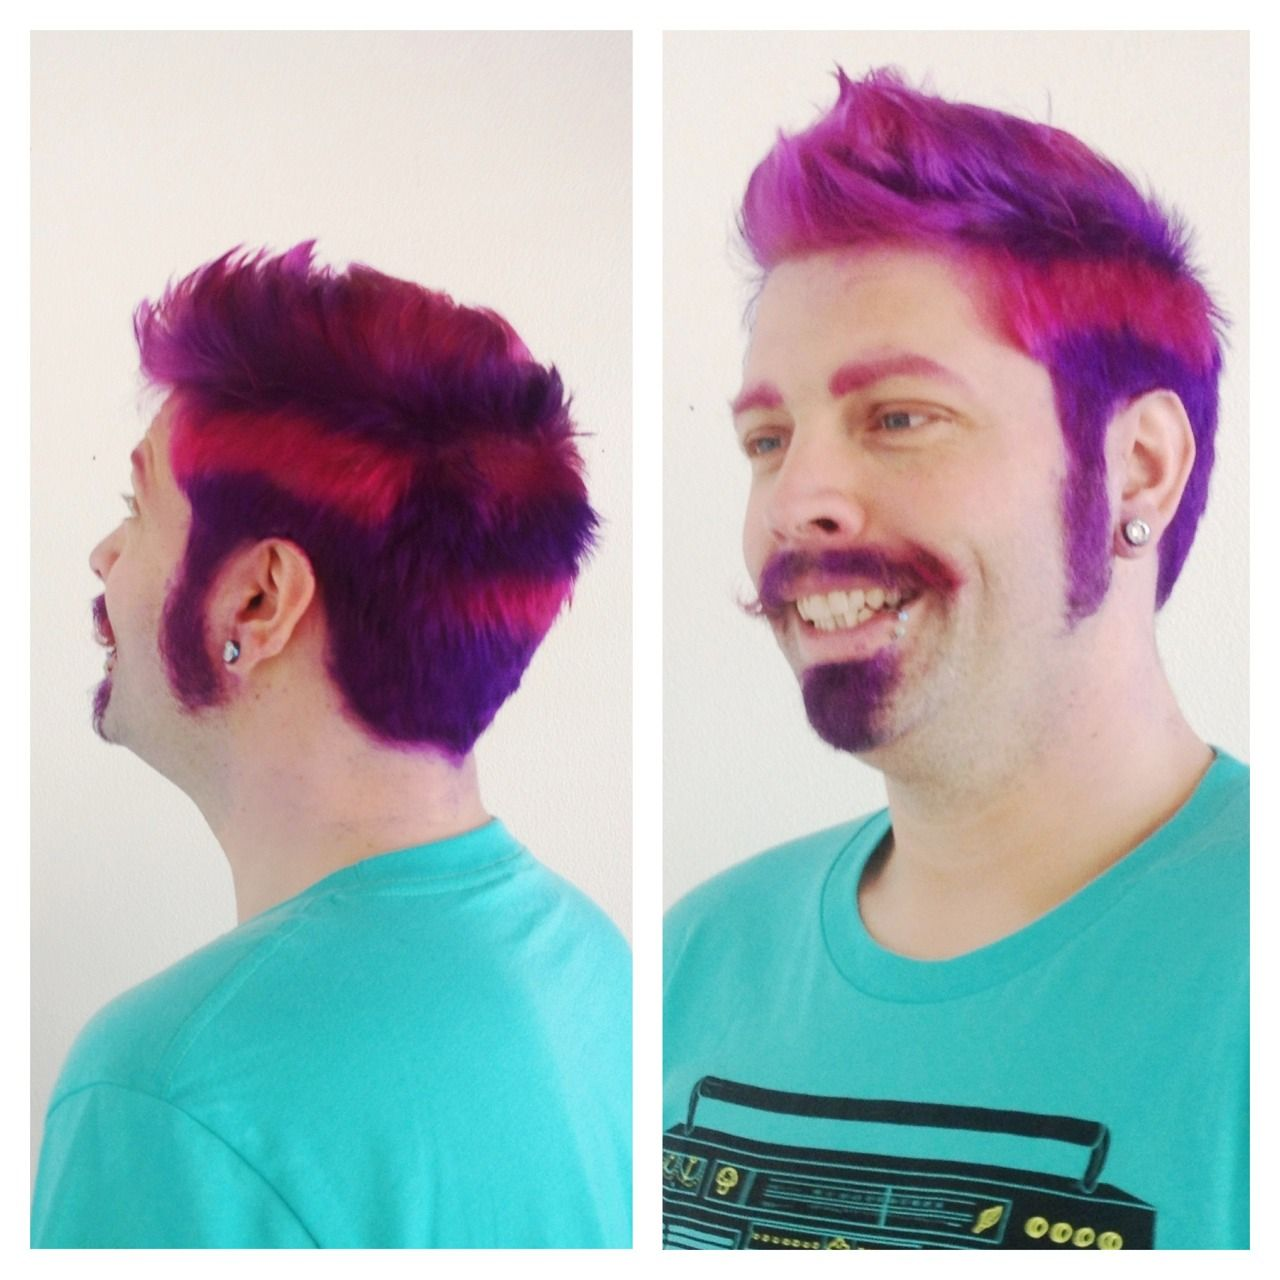 Cheshire Cat Hair His Mustache Really Make His Grin Sinister Pink Purple Cool Hair Color Cool Hairstyles Alternative Hair